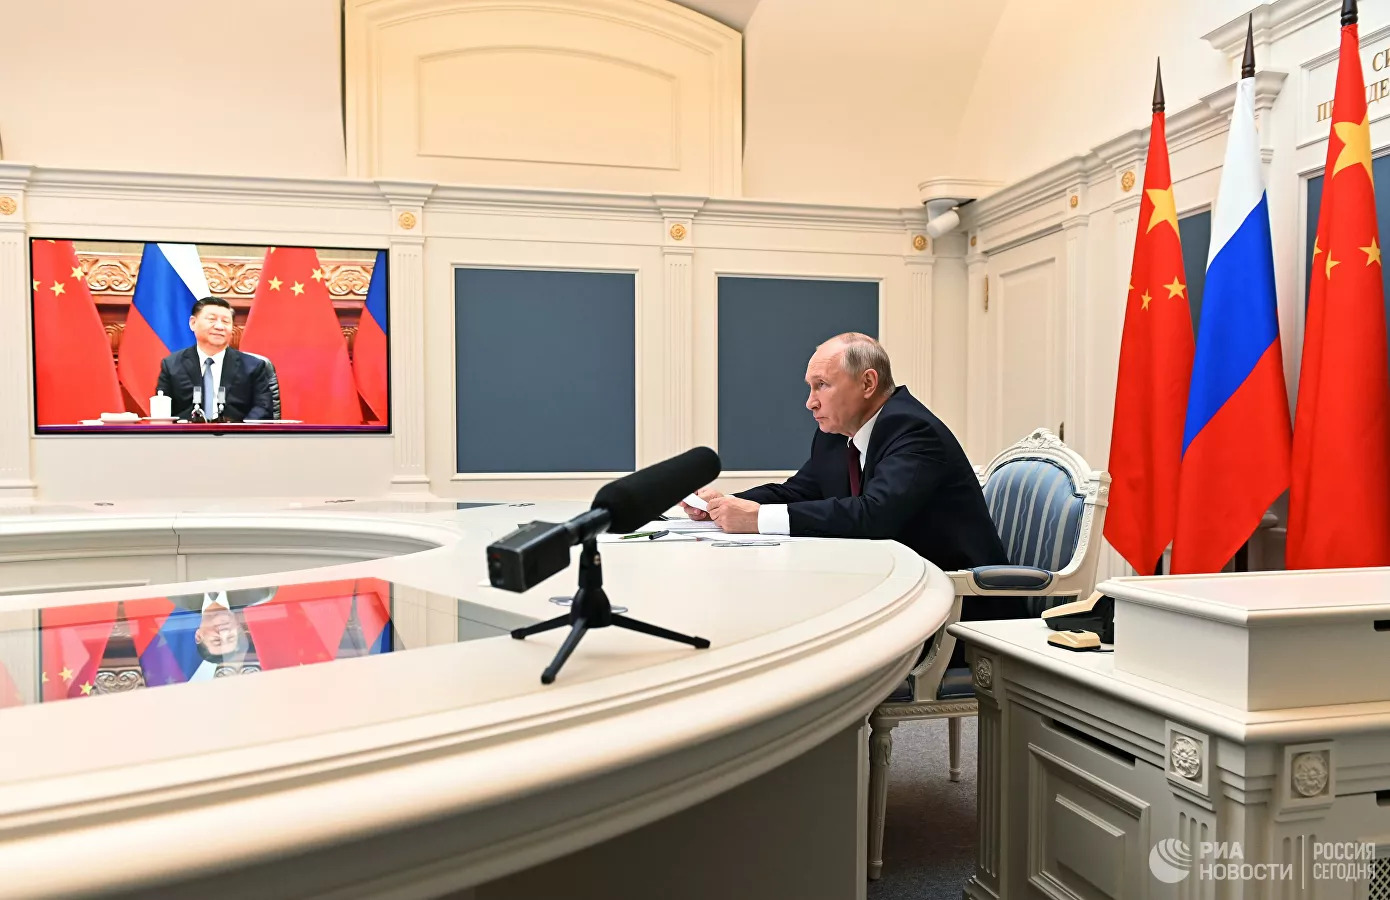 """Russia And China To Deepen Cooperation In Hopes Of """"Multipolar System Of International Relations"""""""